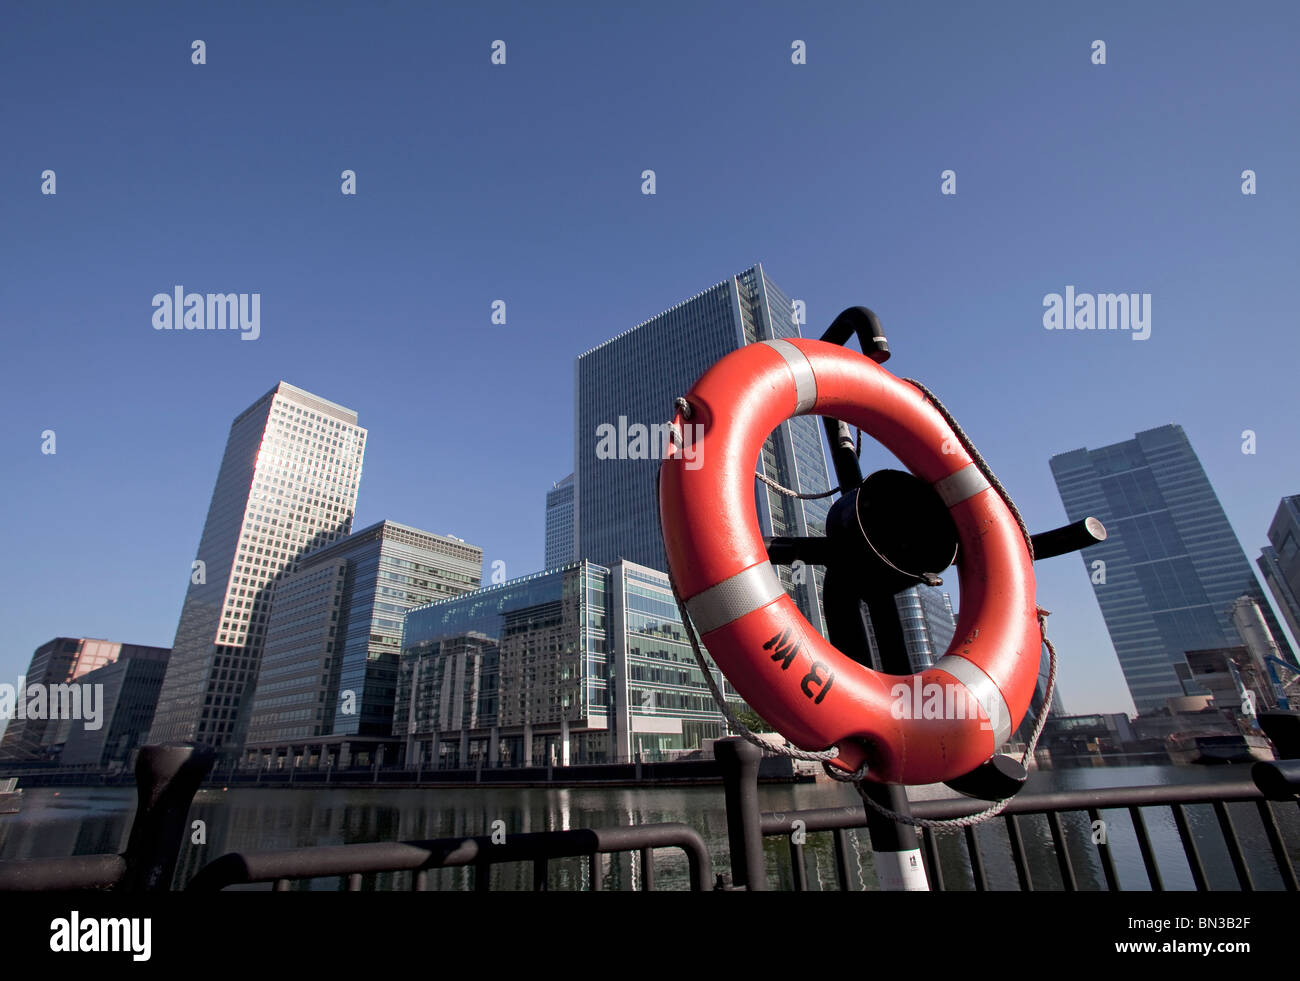 A Lifebelt in Canary Wharf, the new financial centre in the Docklands of London - Stock Image